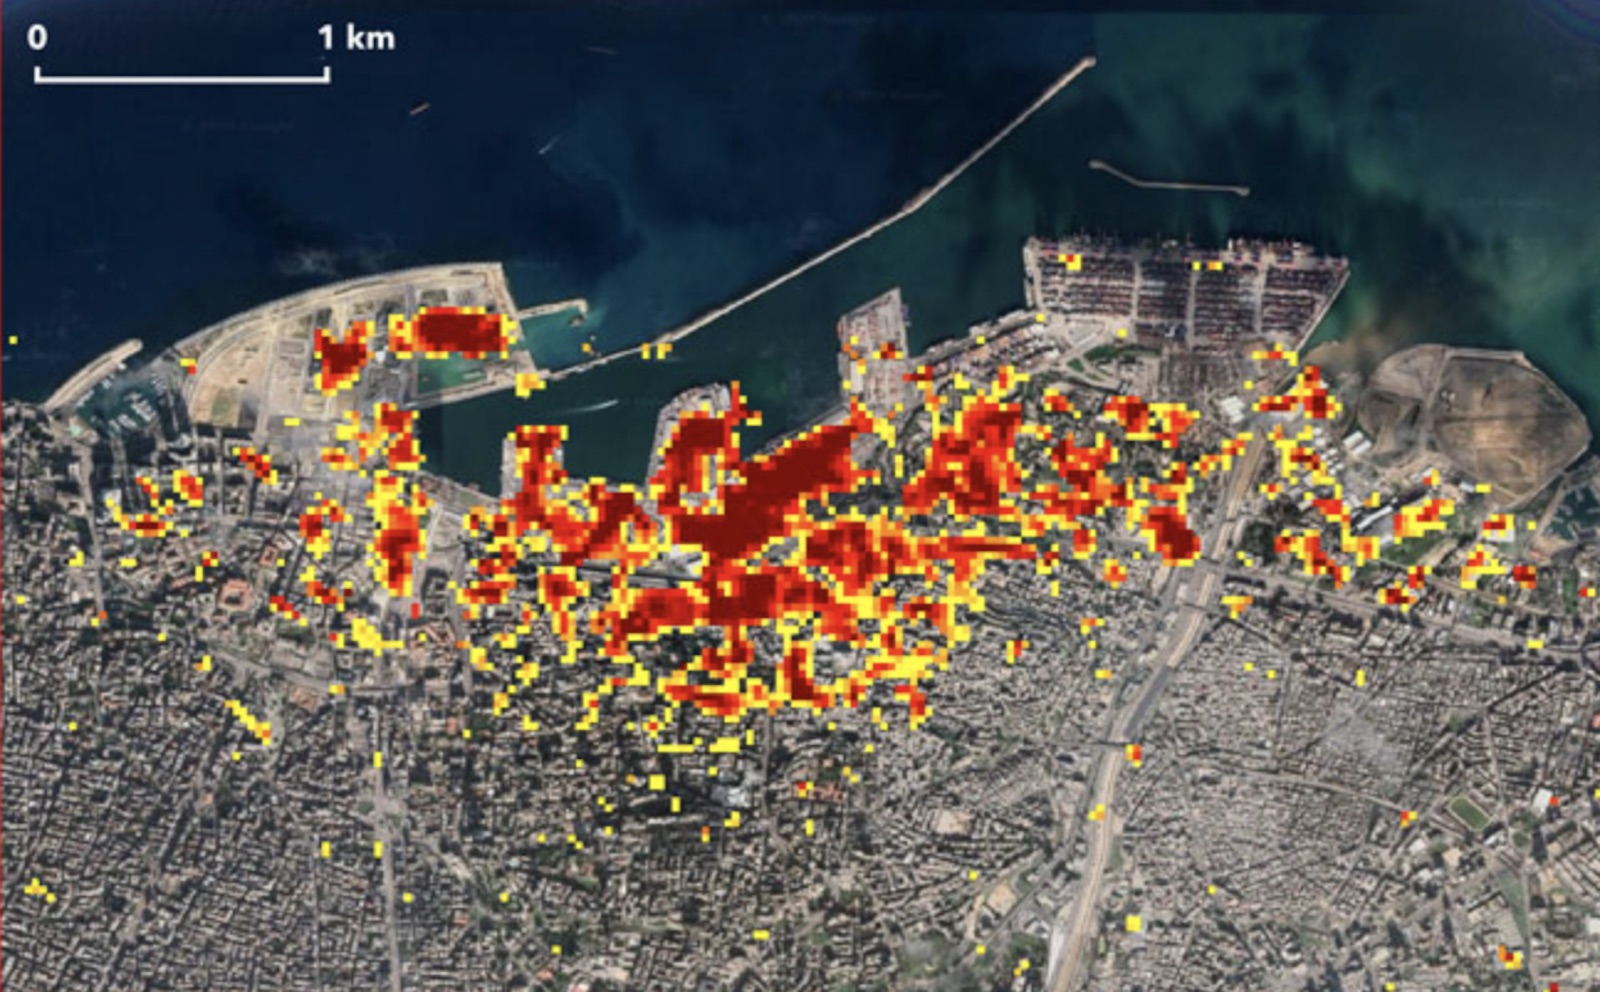 NASA satellites reveal full scope of Beirut devastation – BGR - BGR